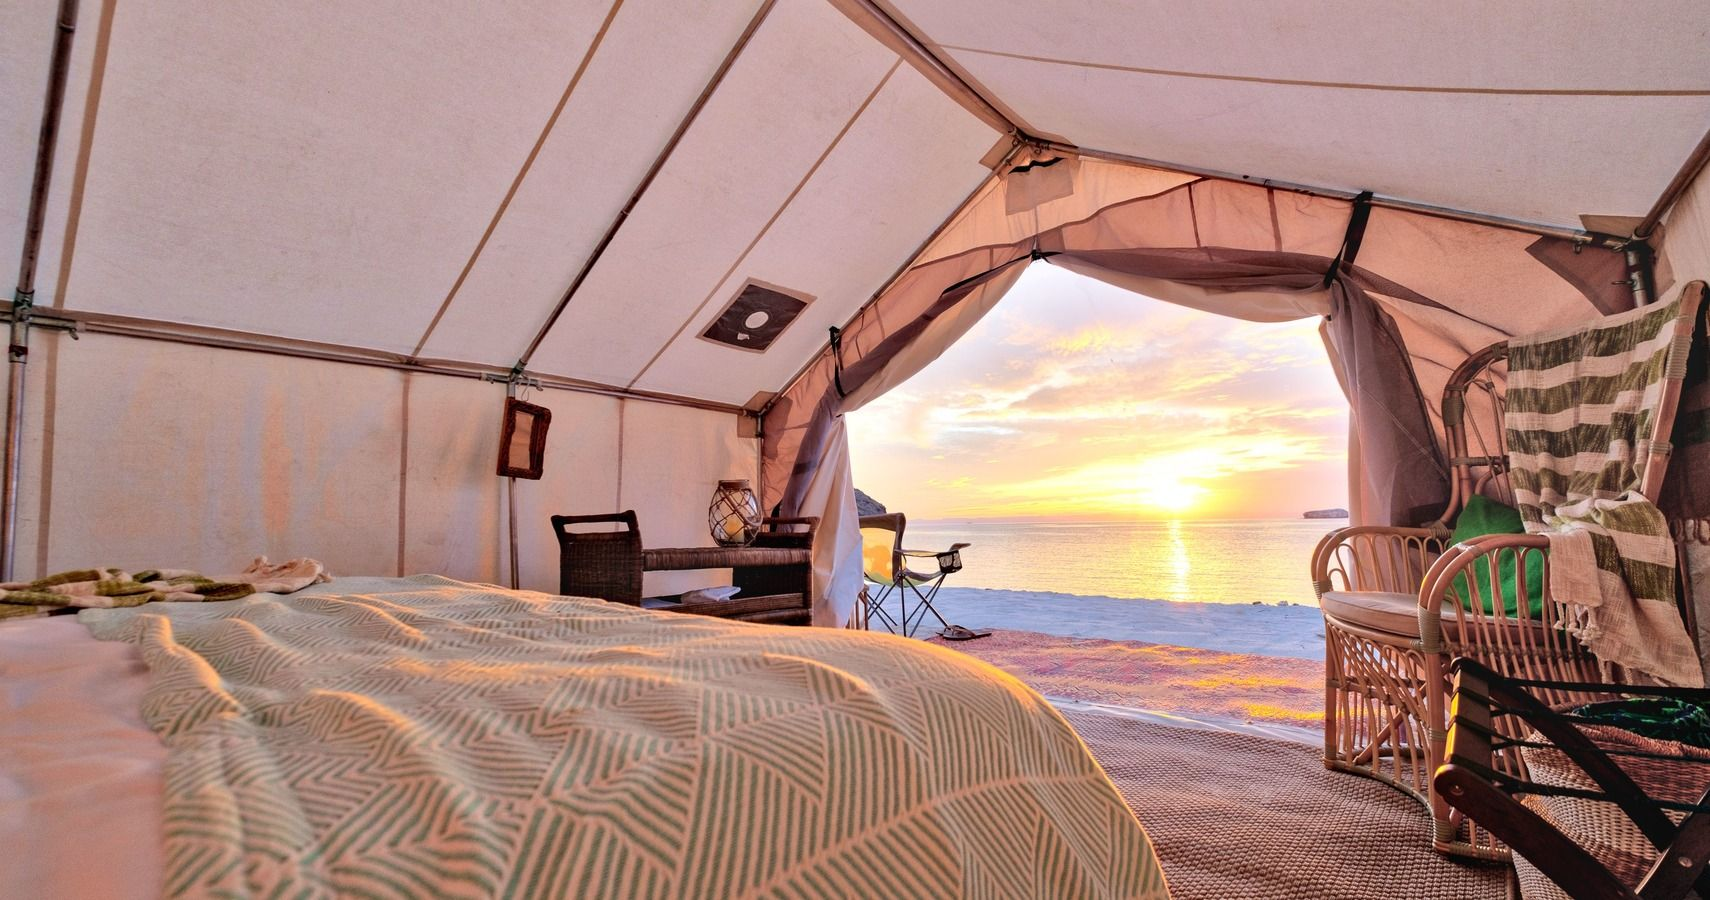 The 10 Most Exotic Glamping Locations In The World | TheTravel